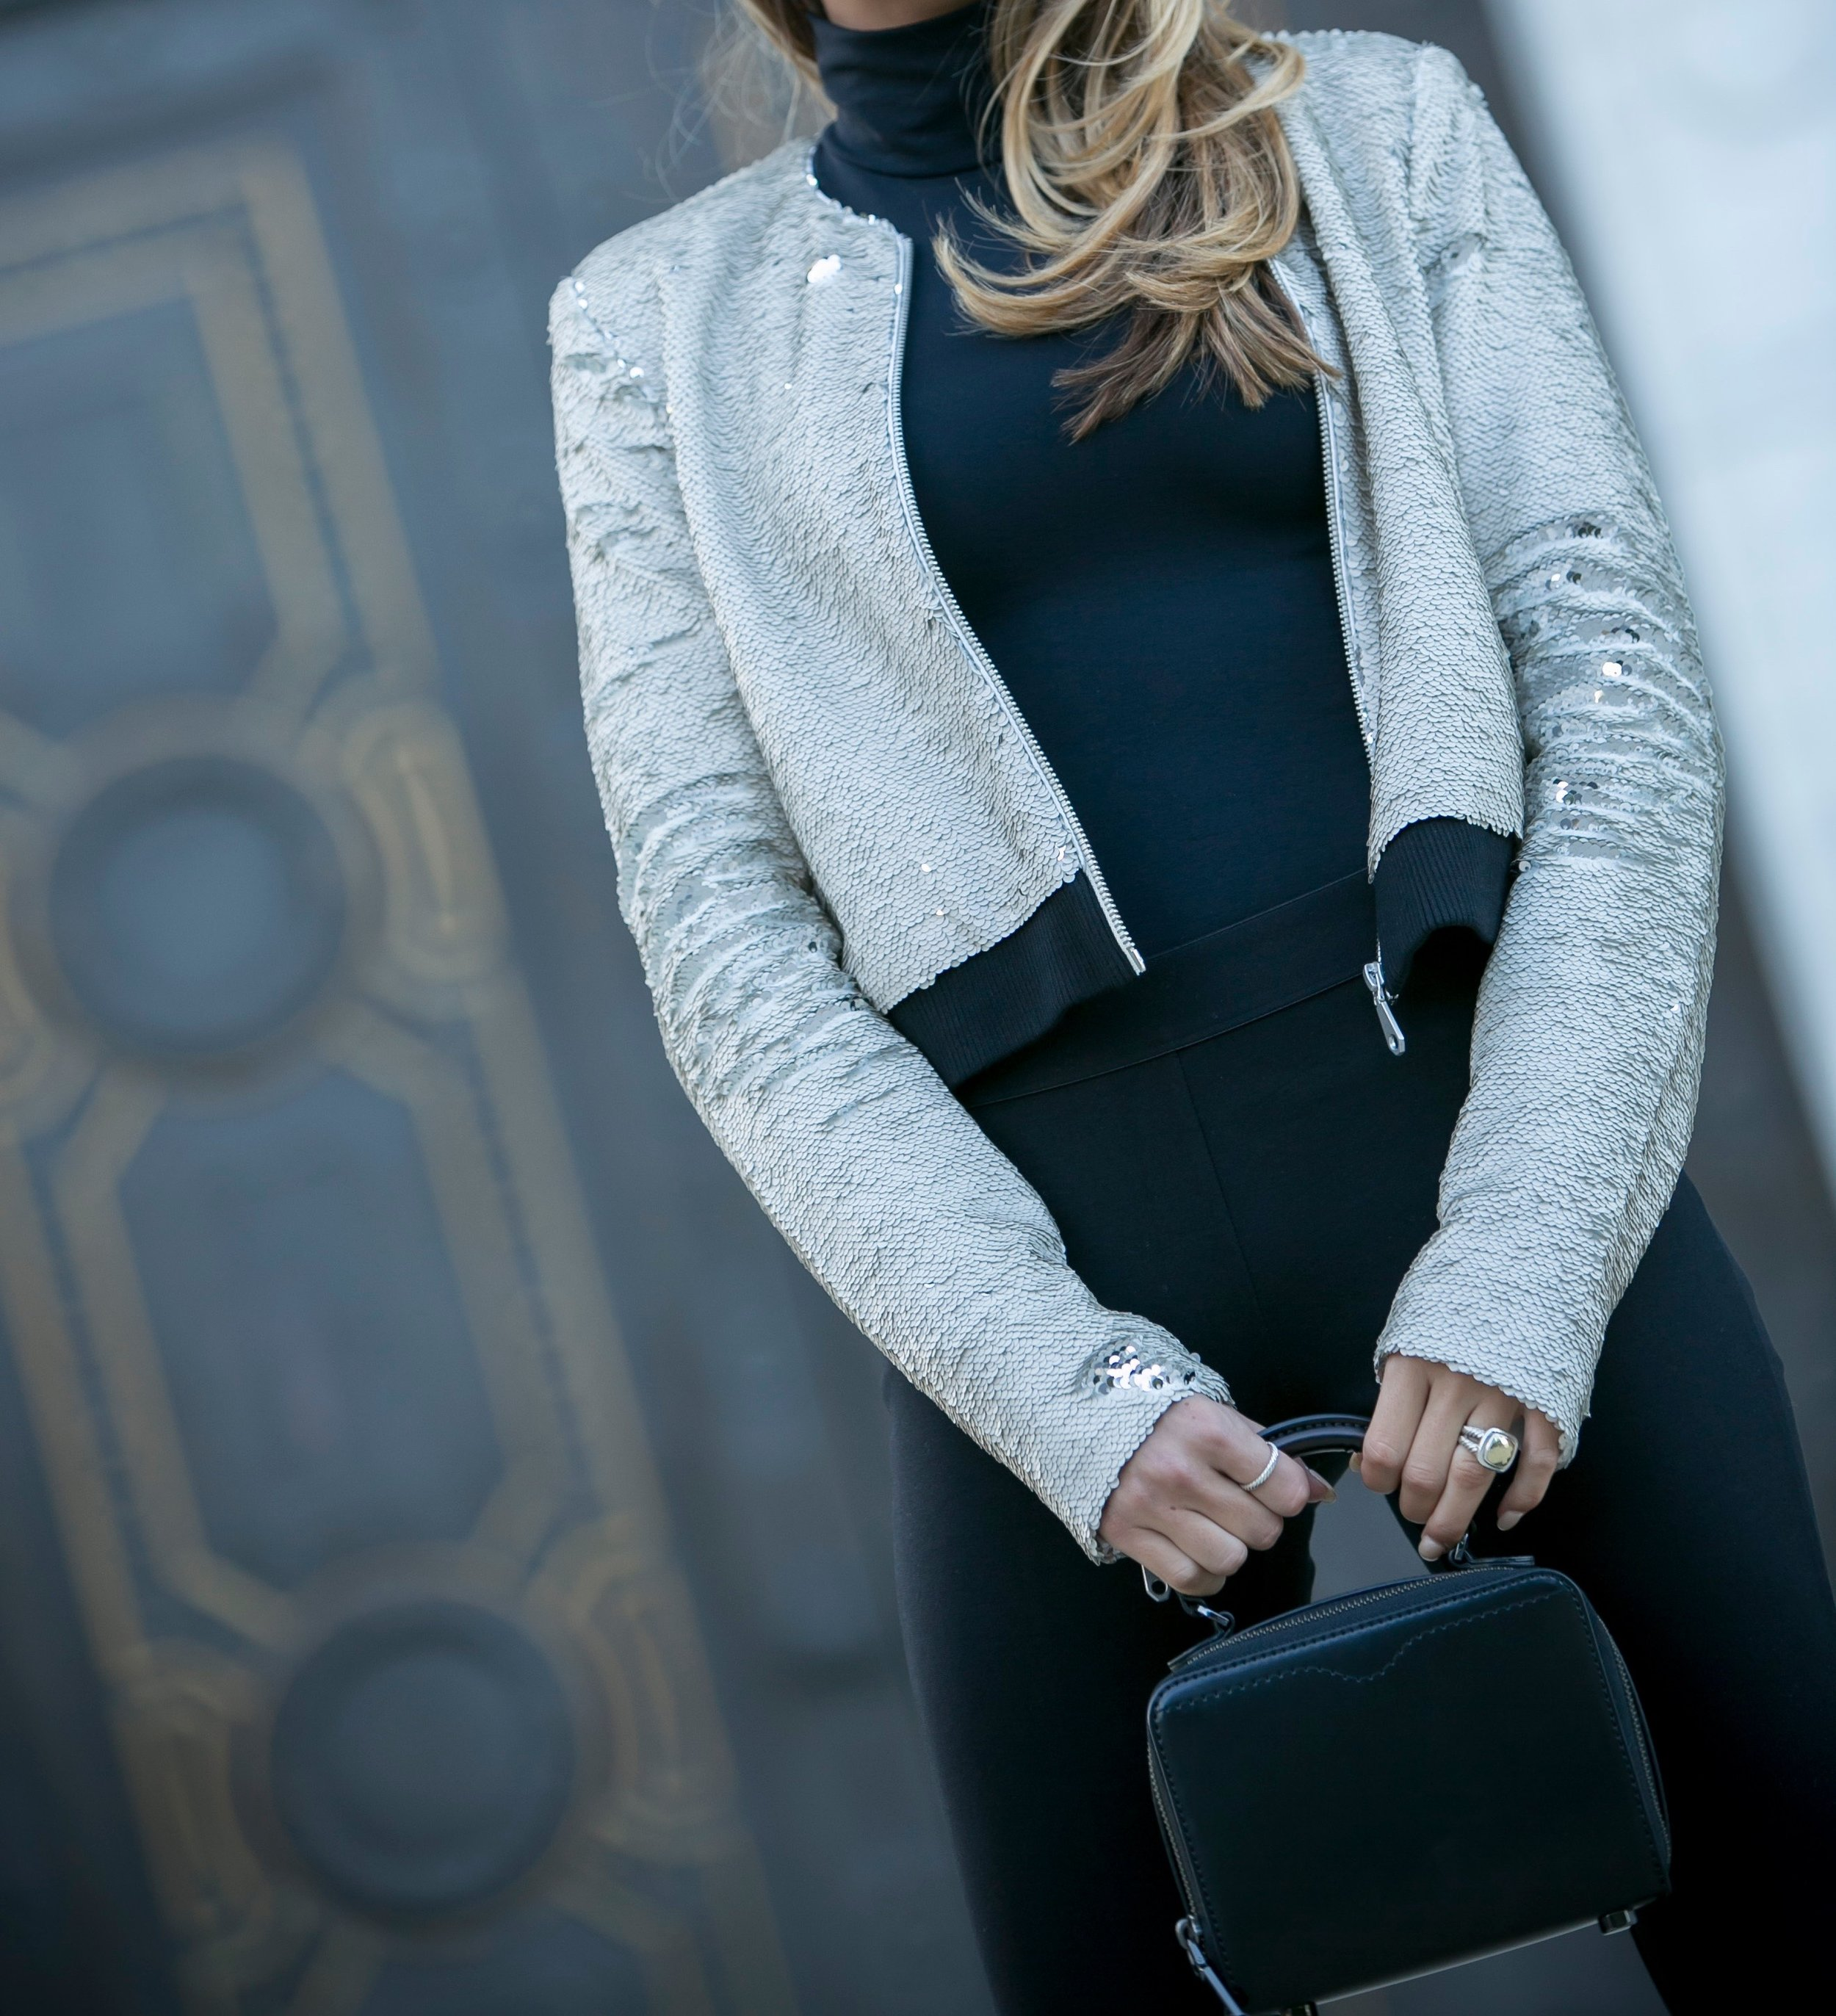 Bomber: Rebecca Minkoff |Bodysuit: Theory |Leggings: J.Crew |Boots: Joie |Bag: Rebecca Minkoff     Dino Petrocelli Photography